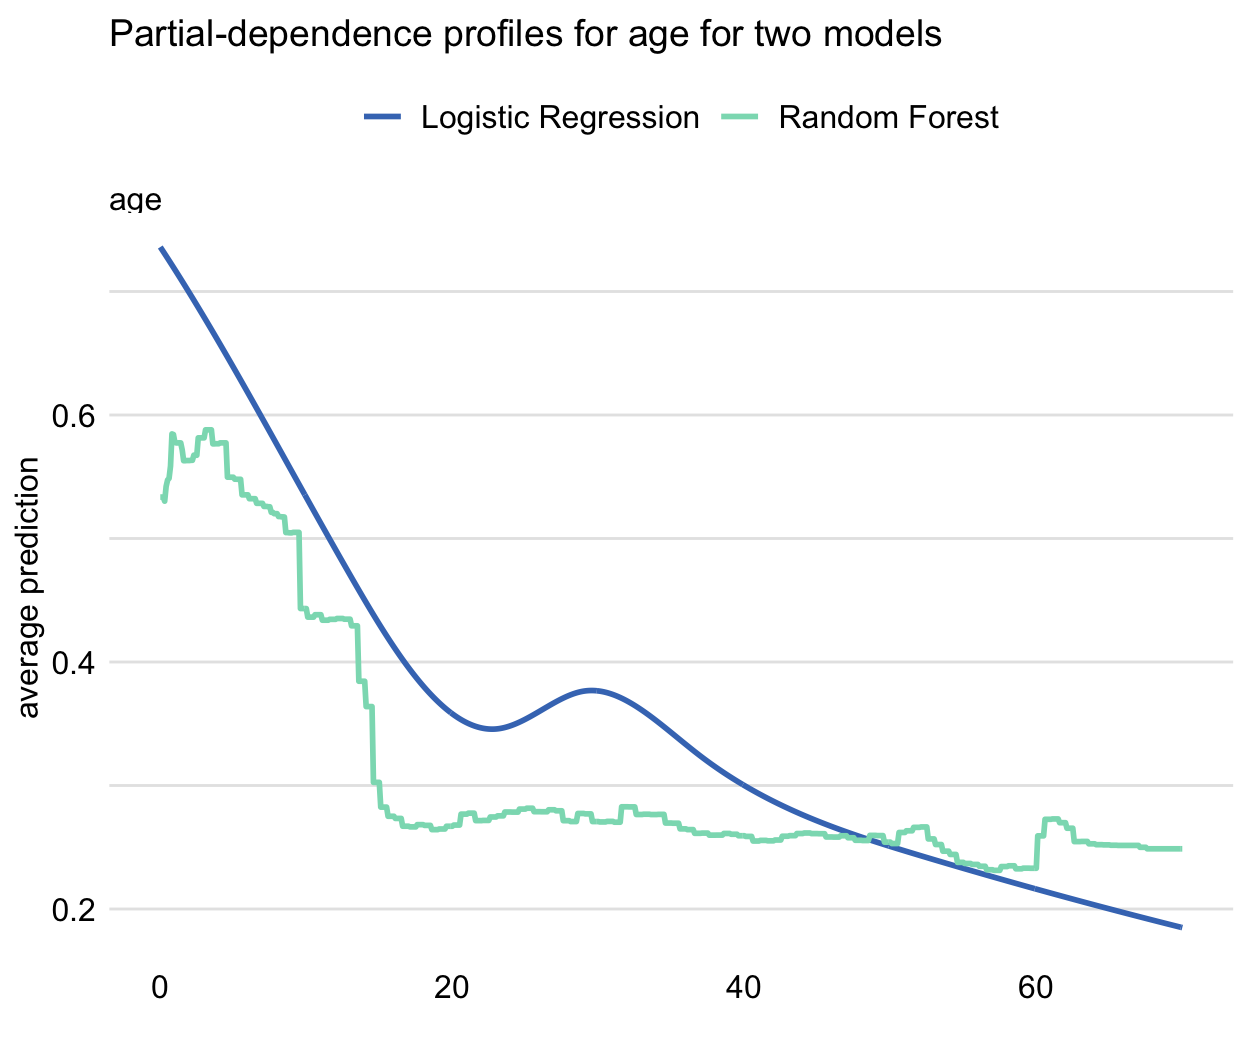 Partial-dependence profiles for age for the random forest (green line) and logistic regression (blue line) models for the Titanic dataset.